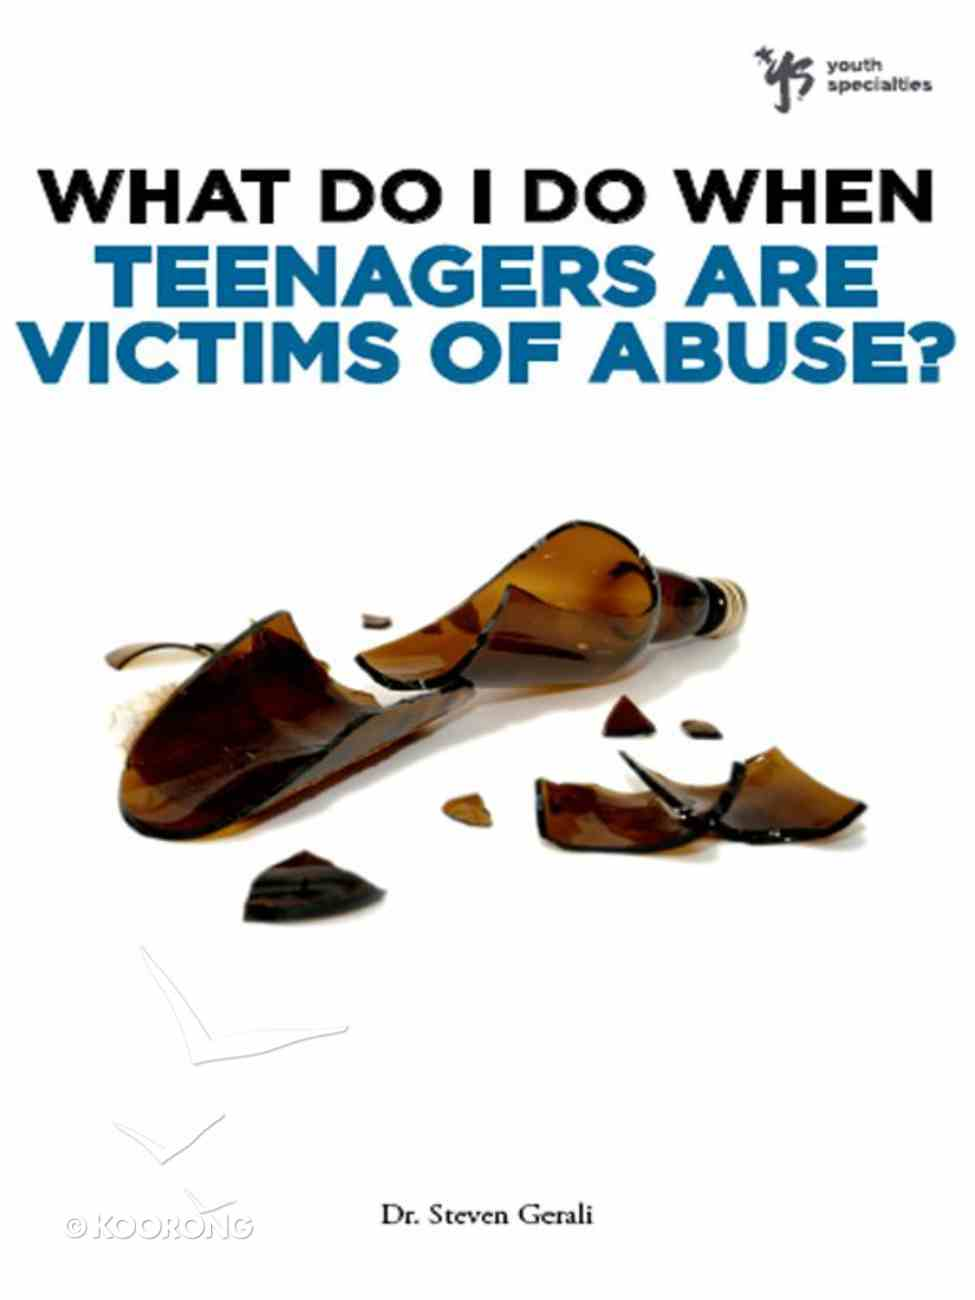 Teenagers Are Victims of Abuse? (Wdidw Series) eBook